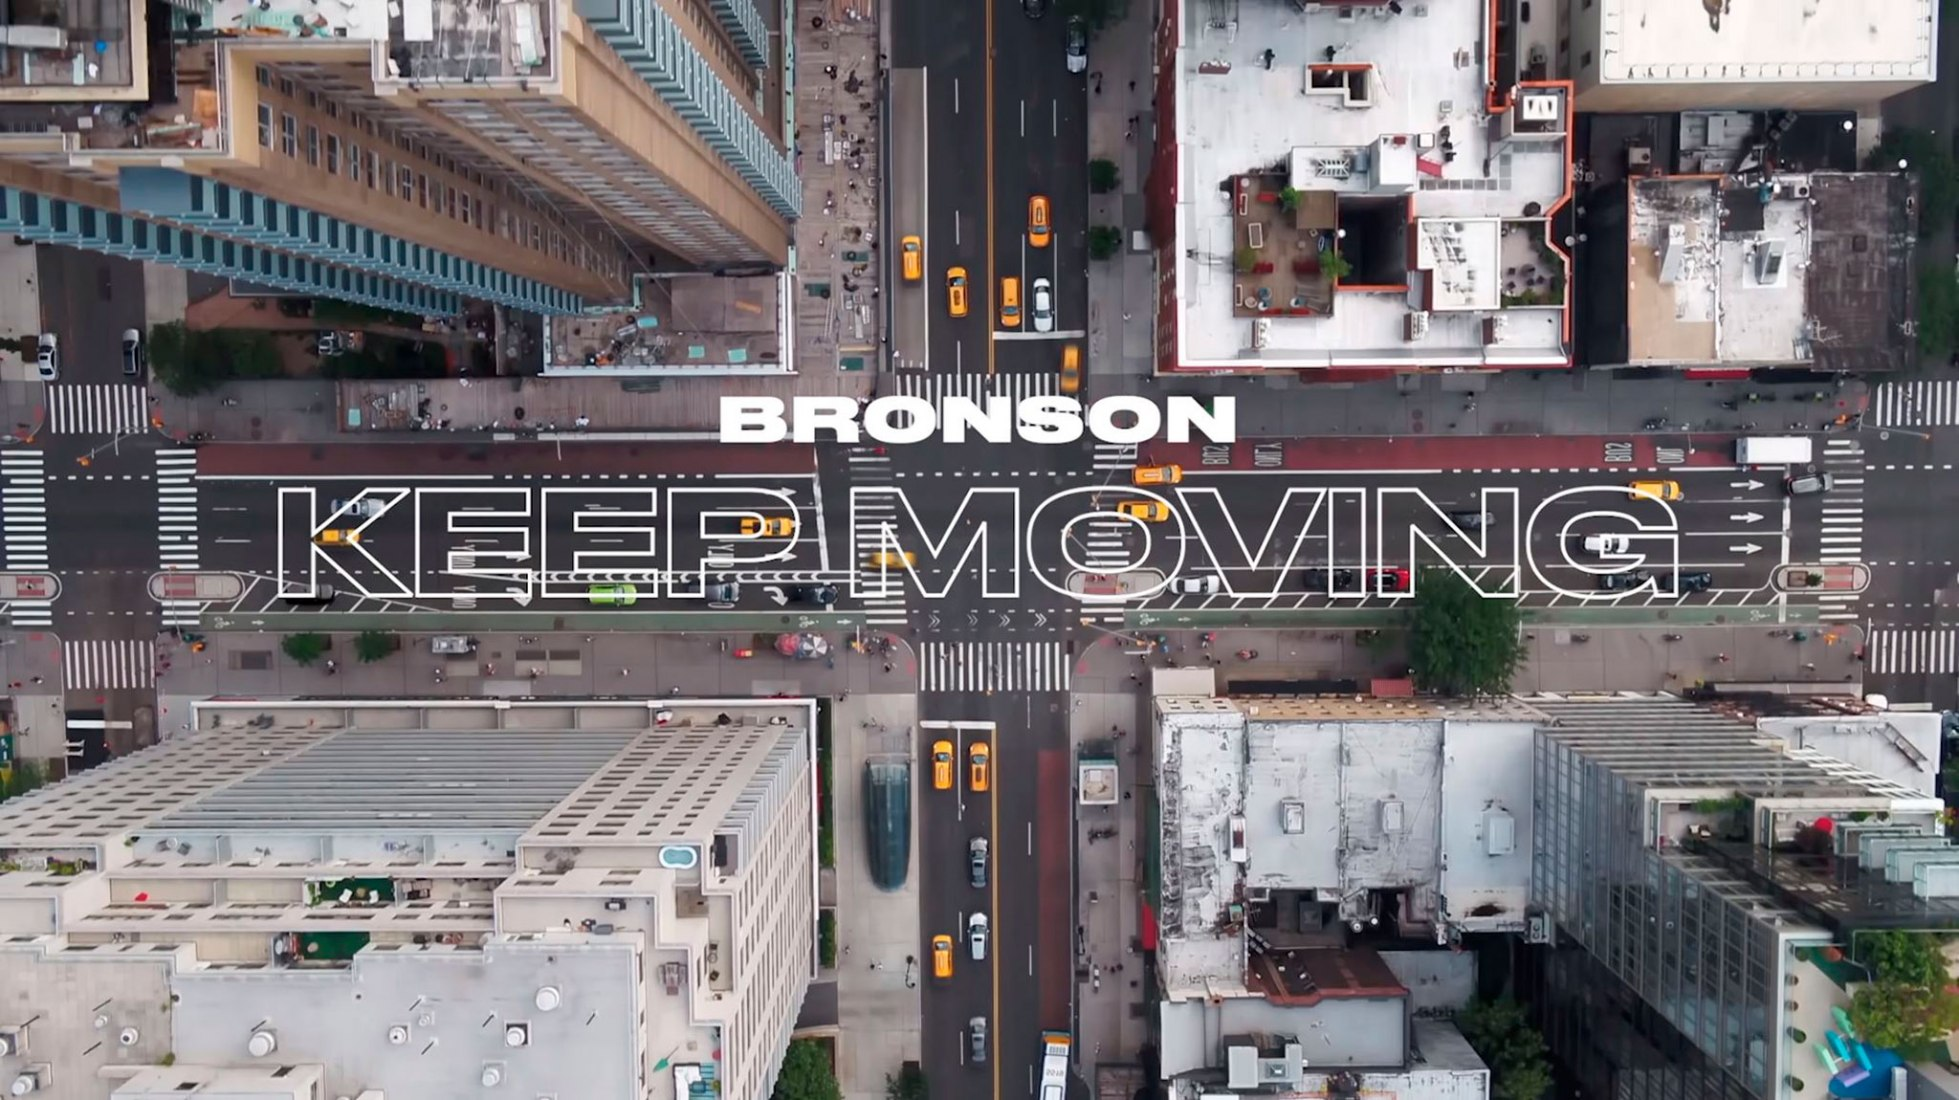 'Keep moving' by Bronson